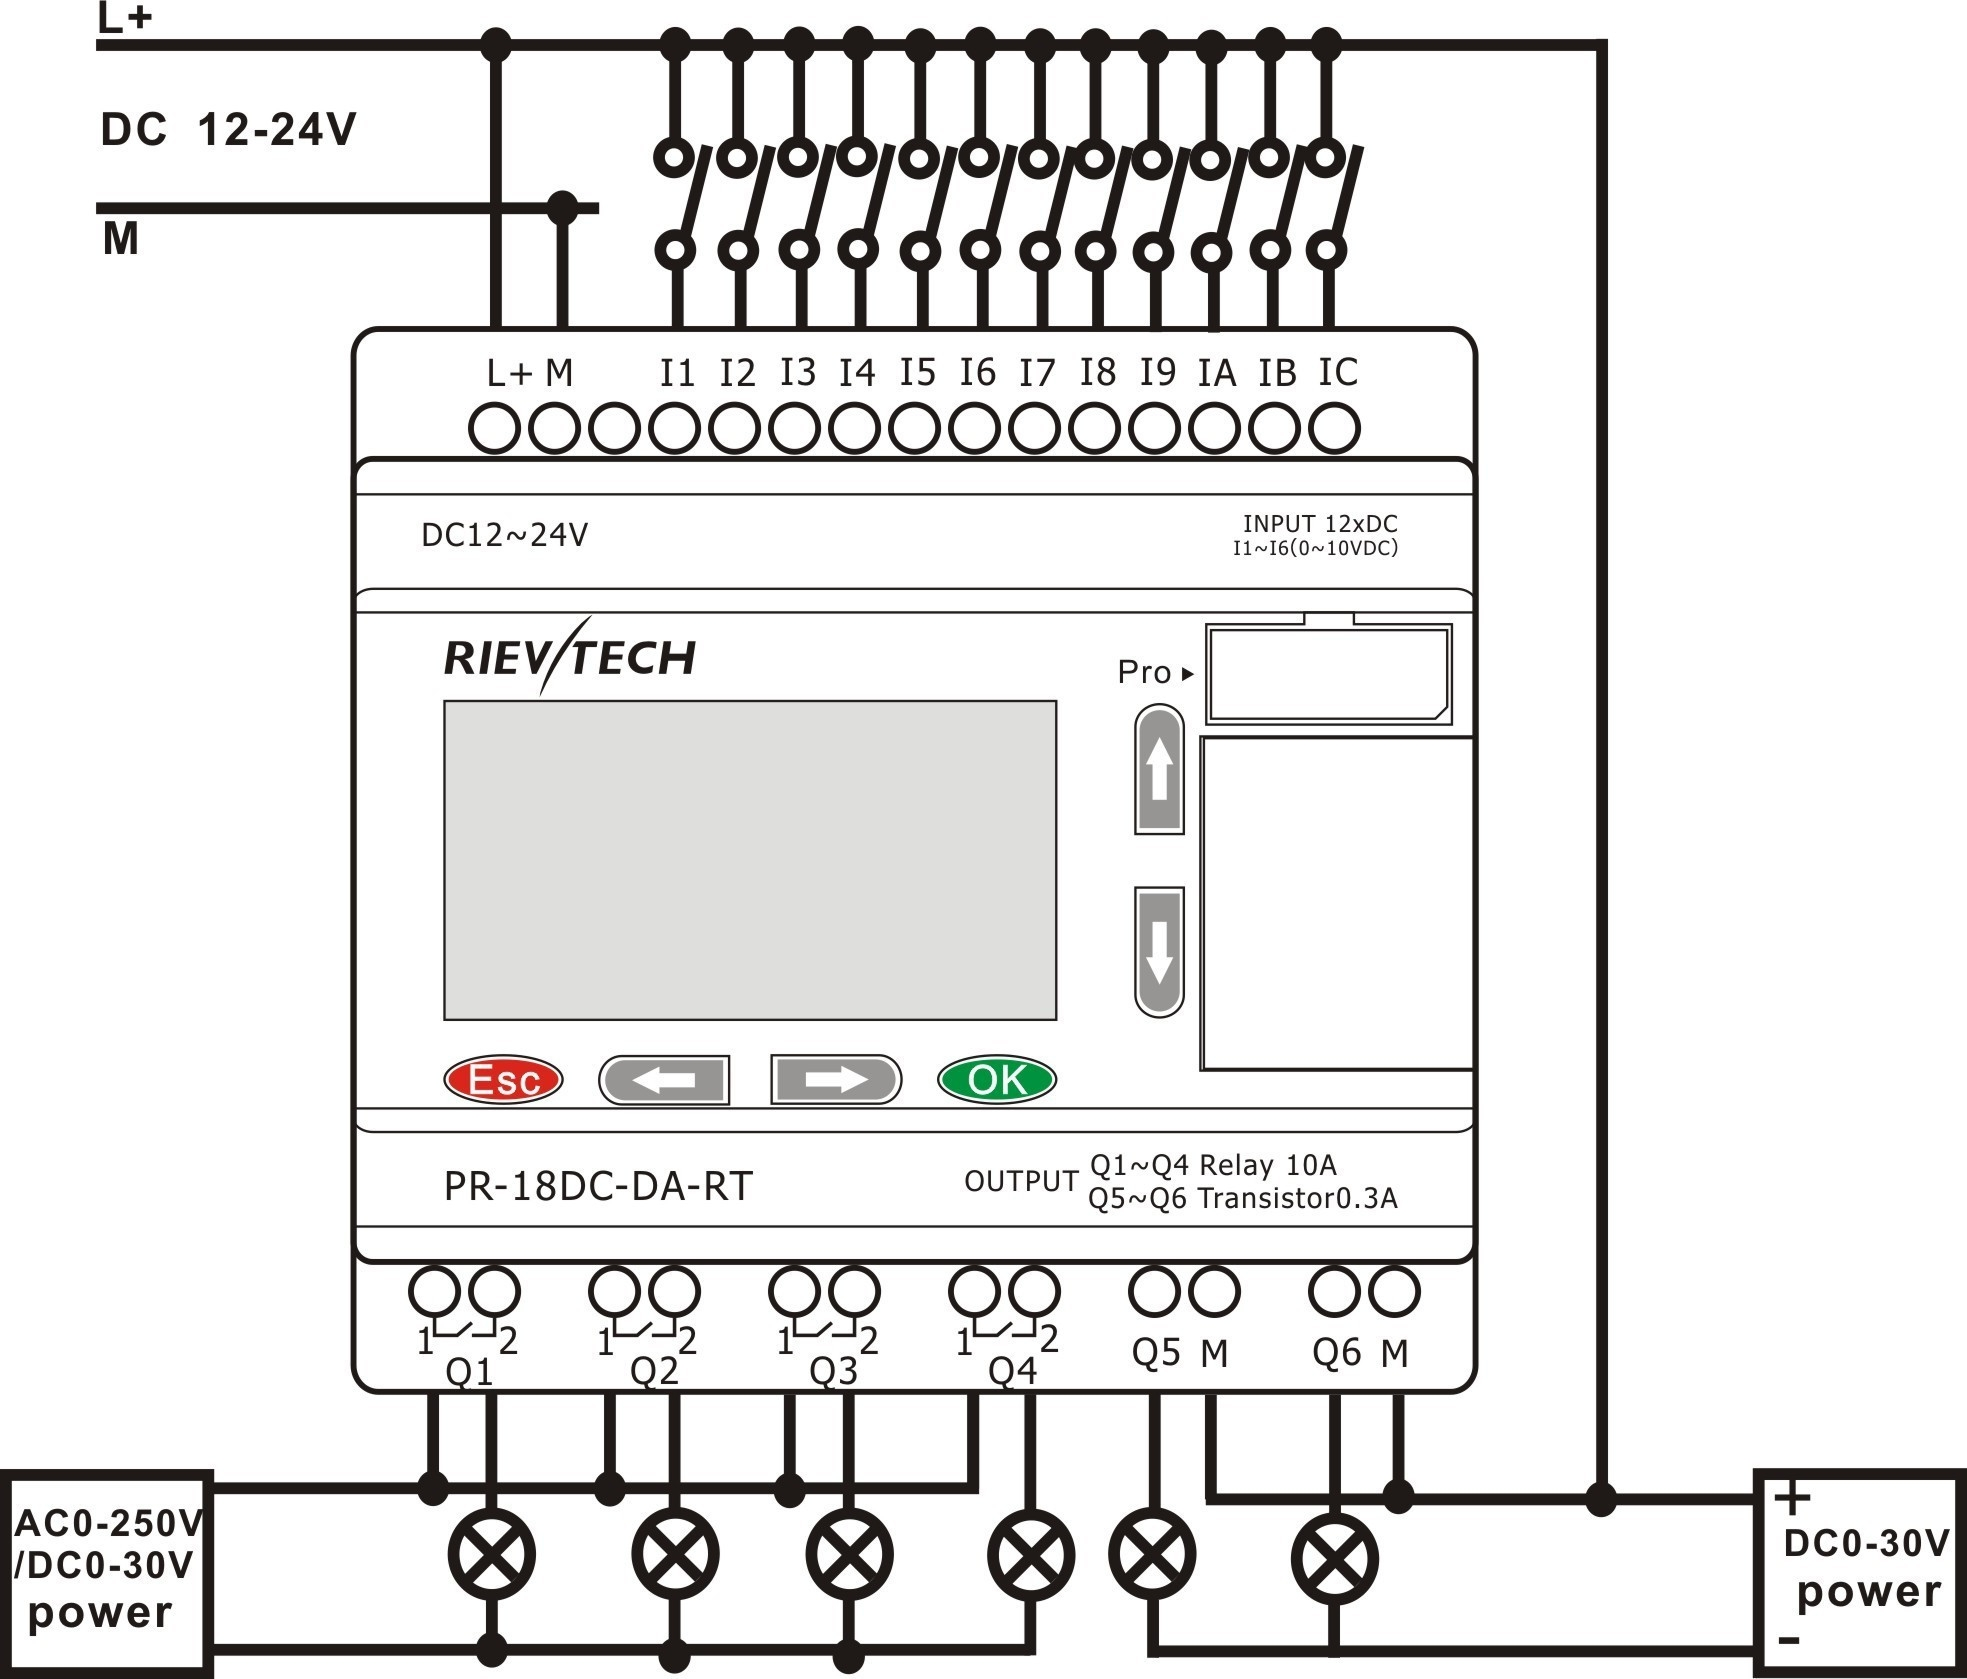 Wiring Diagram Plc | Wiring Schematic Diagram - 12 ... on